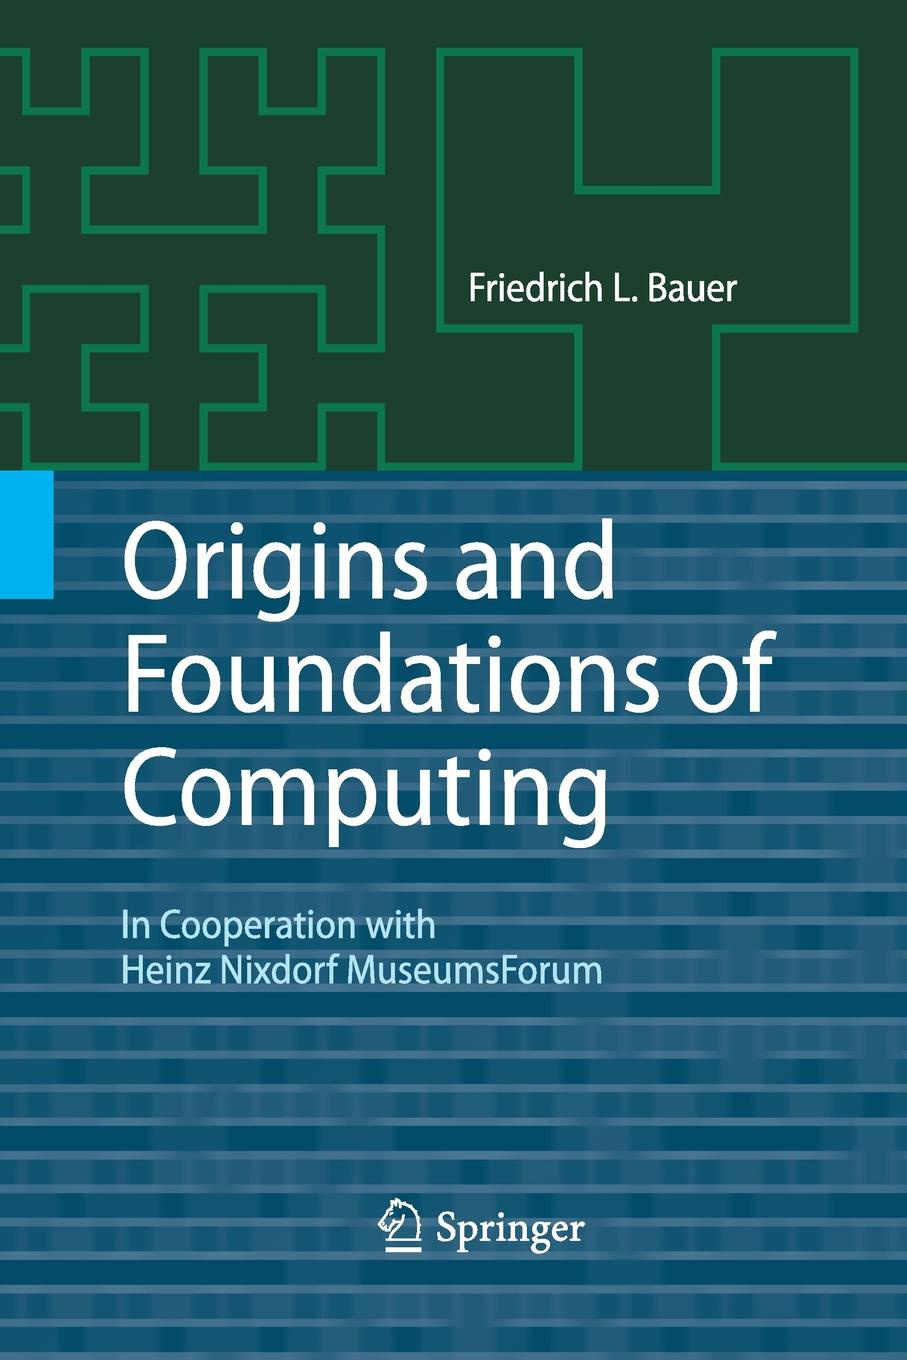 Friedrich L. Bauer Origins and Foundations of Computing. In Cooperation with Heinz Nixdorf MuseumsForum